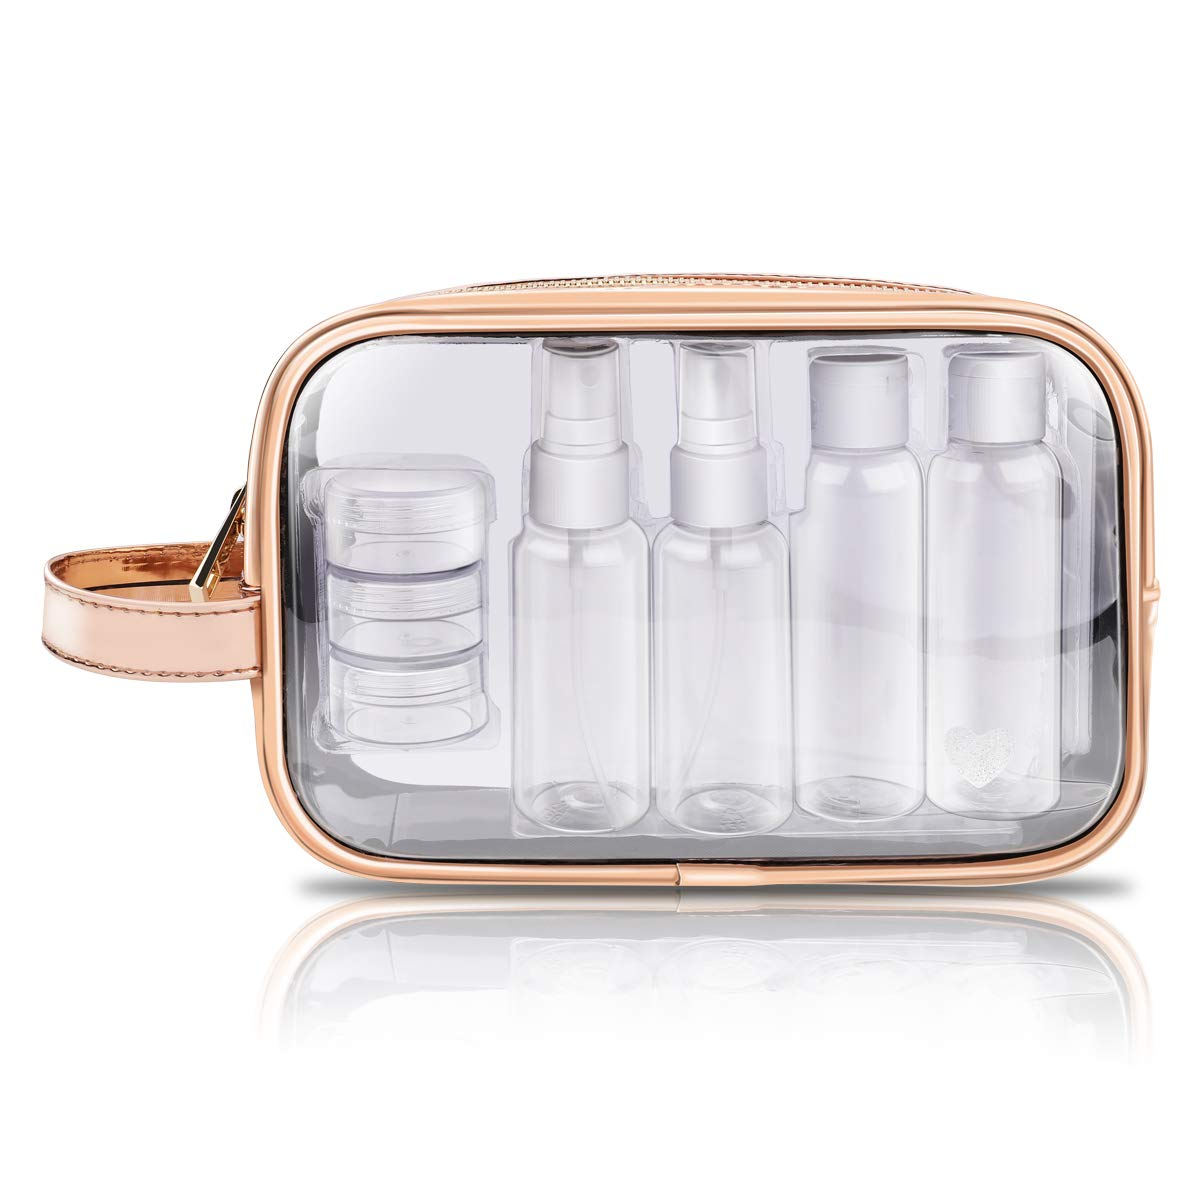 Transparent Toiletry Bag + 7 Pots, Morpilot Containers, Plane Bottles, PVC Travel Bag Waterproof Portable Makeup Bags for Women and Men